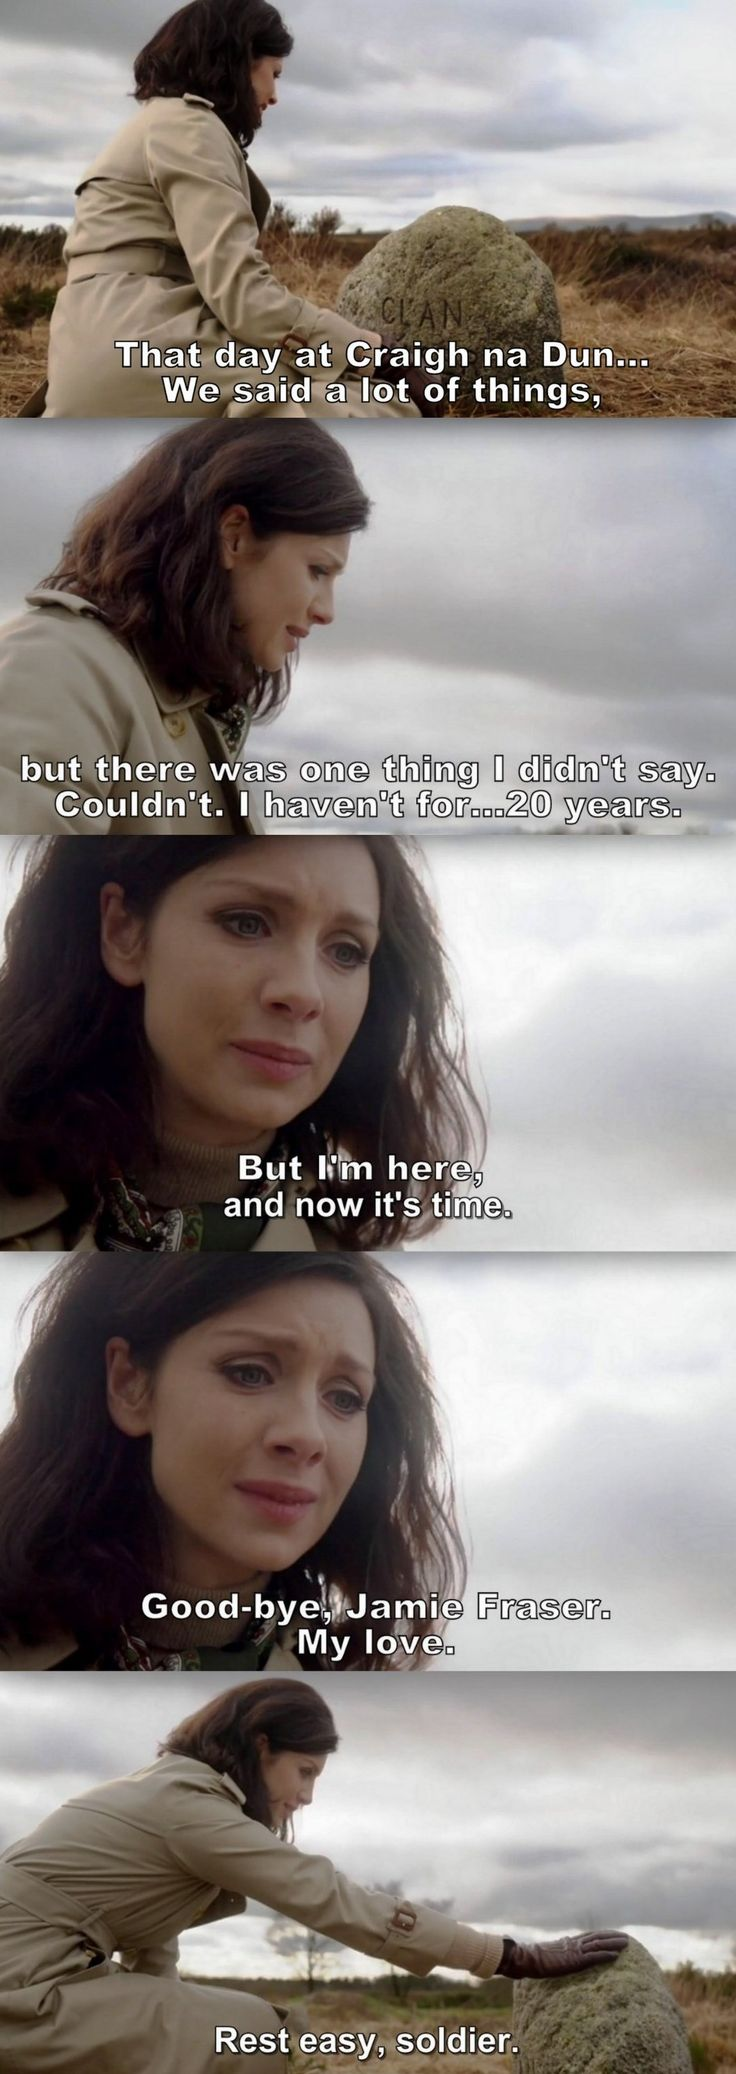 There's no real goodbye between Jamie and Claire. They always find each other again.